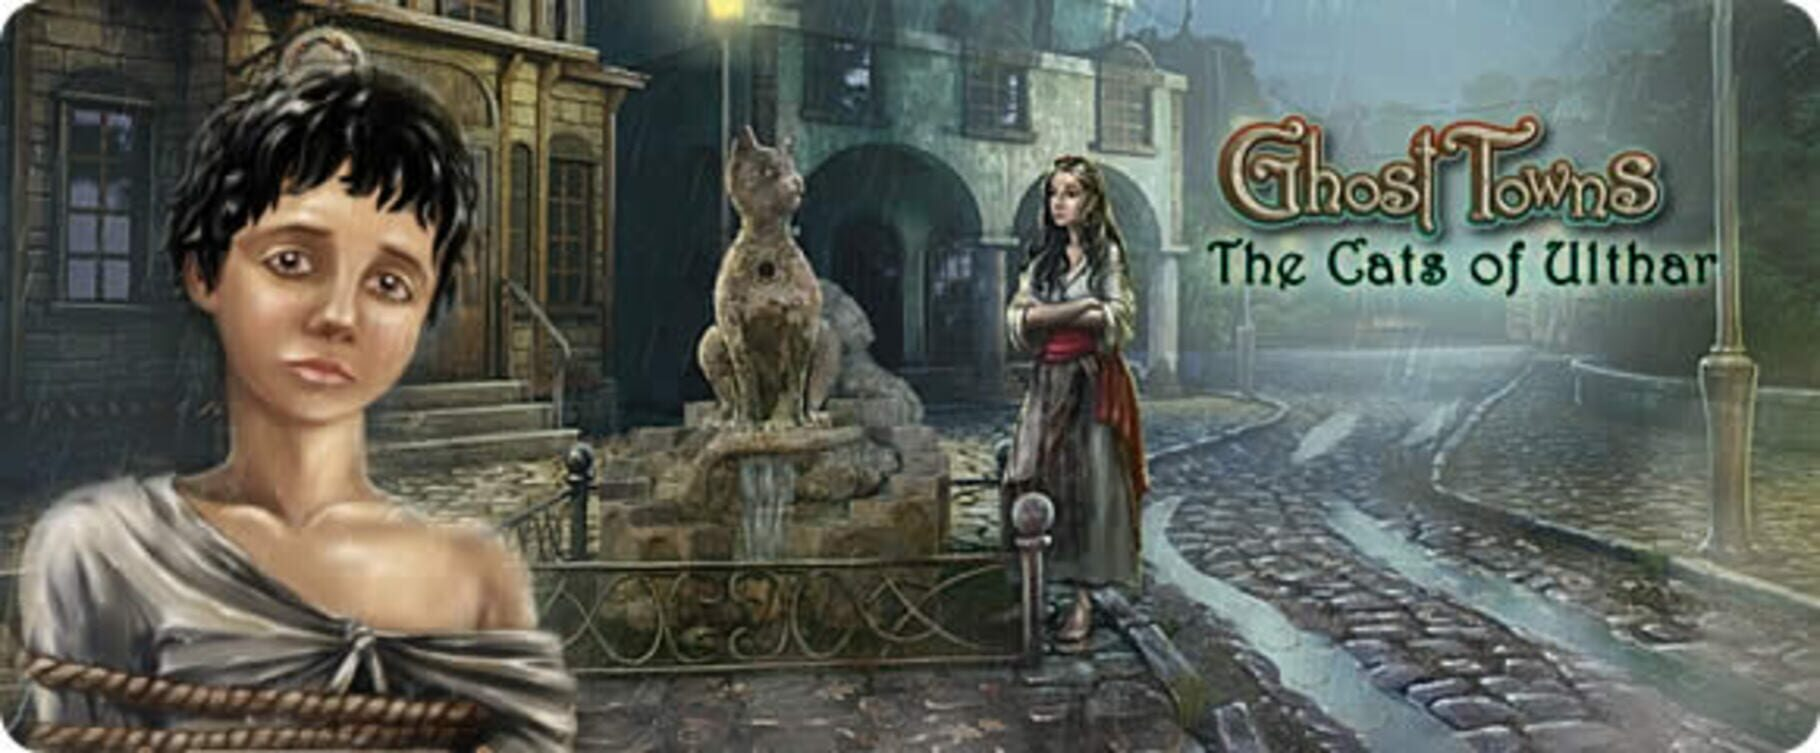 buy Ghost Towns: Cats of Ulthar cd key for all platform